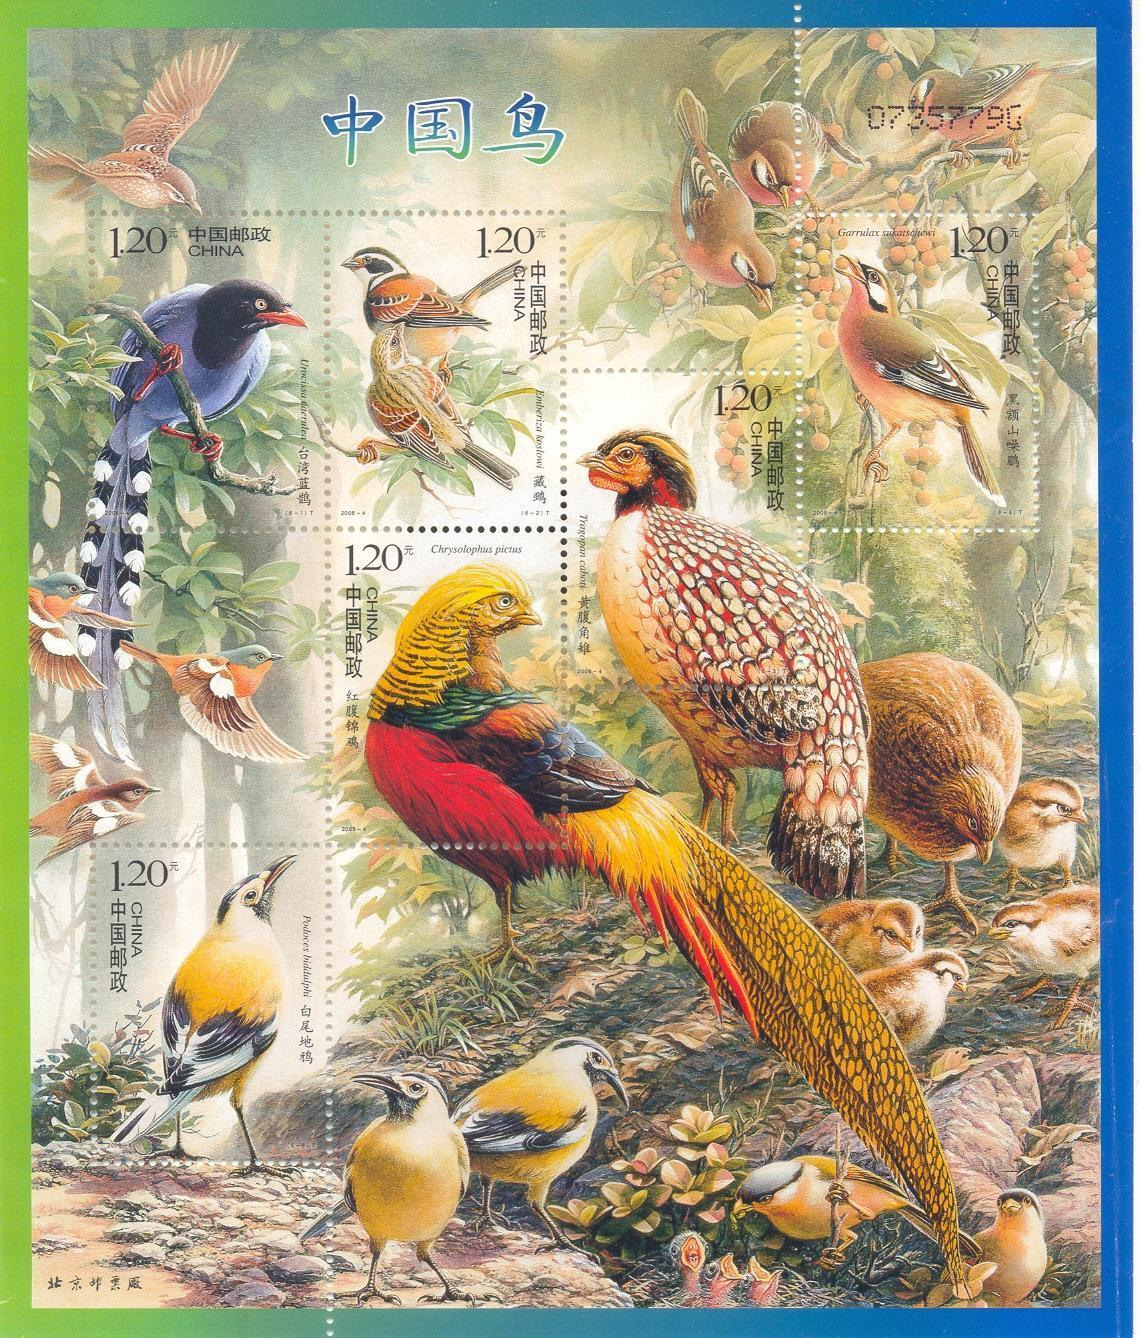 all types of birds images china - bird stamps hd wallpaper and